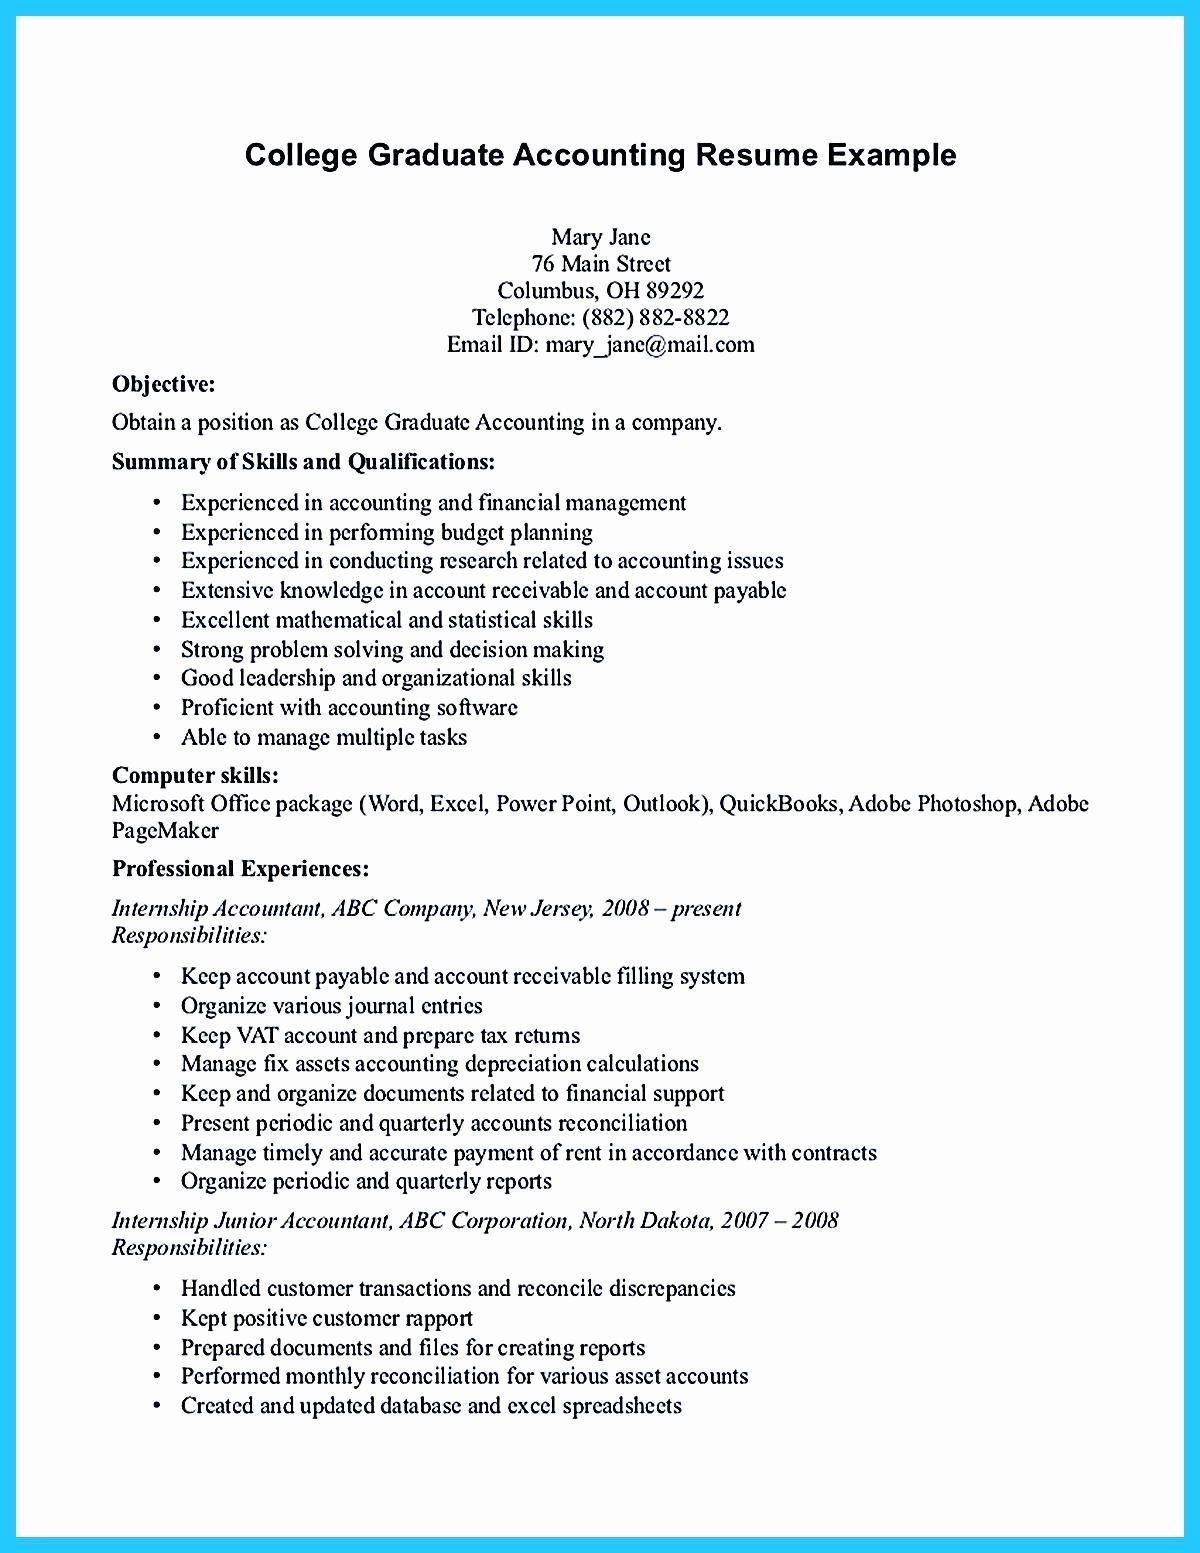 Resume For Accounting Internship With No Experience Printable Resume Template Accounting Student Student Resume Resume Objective Examples